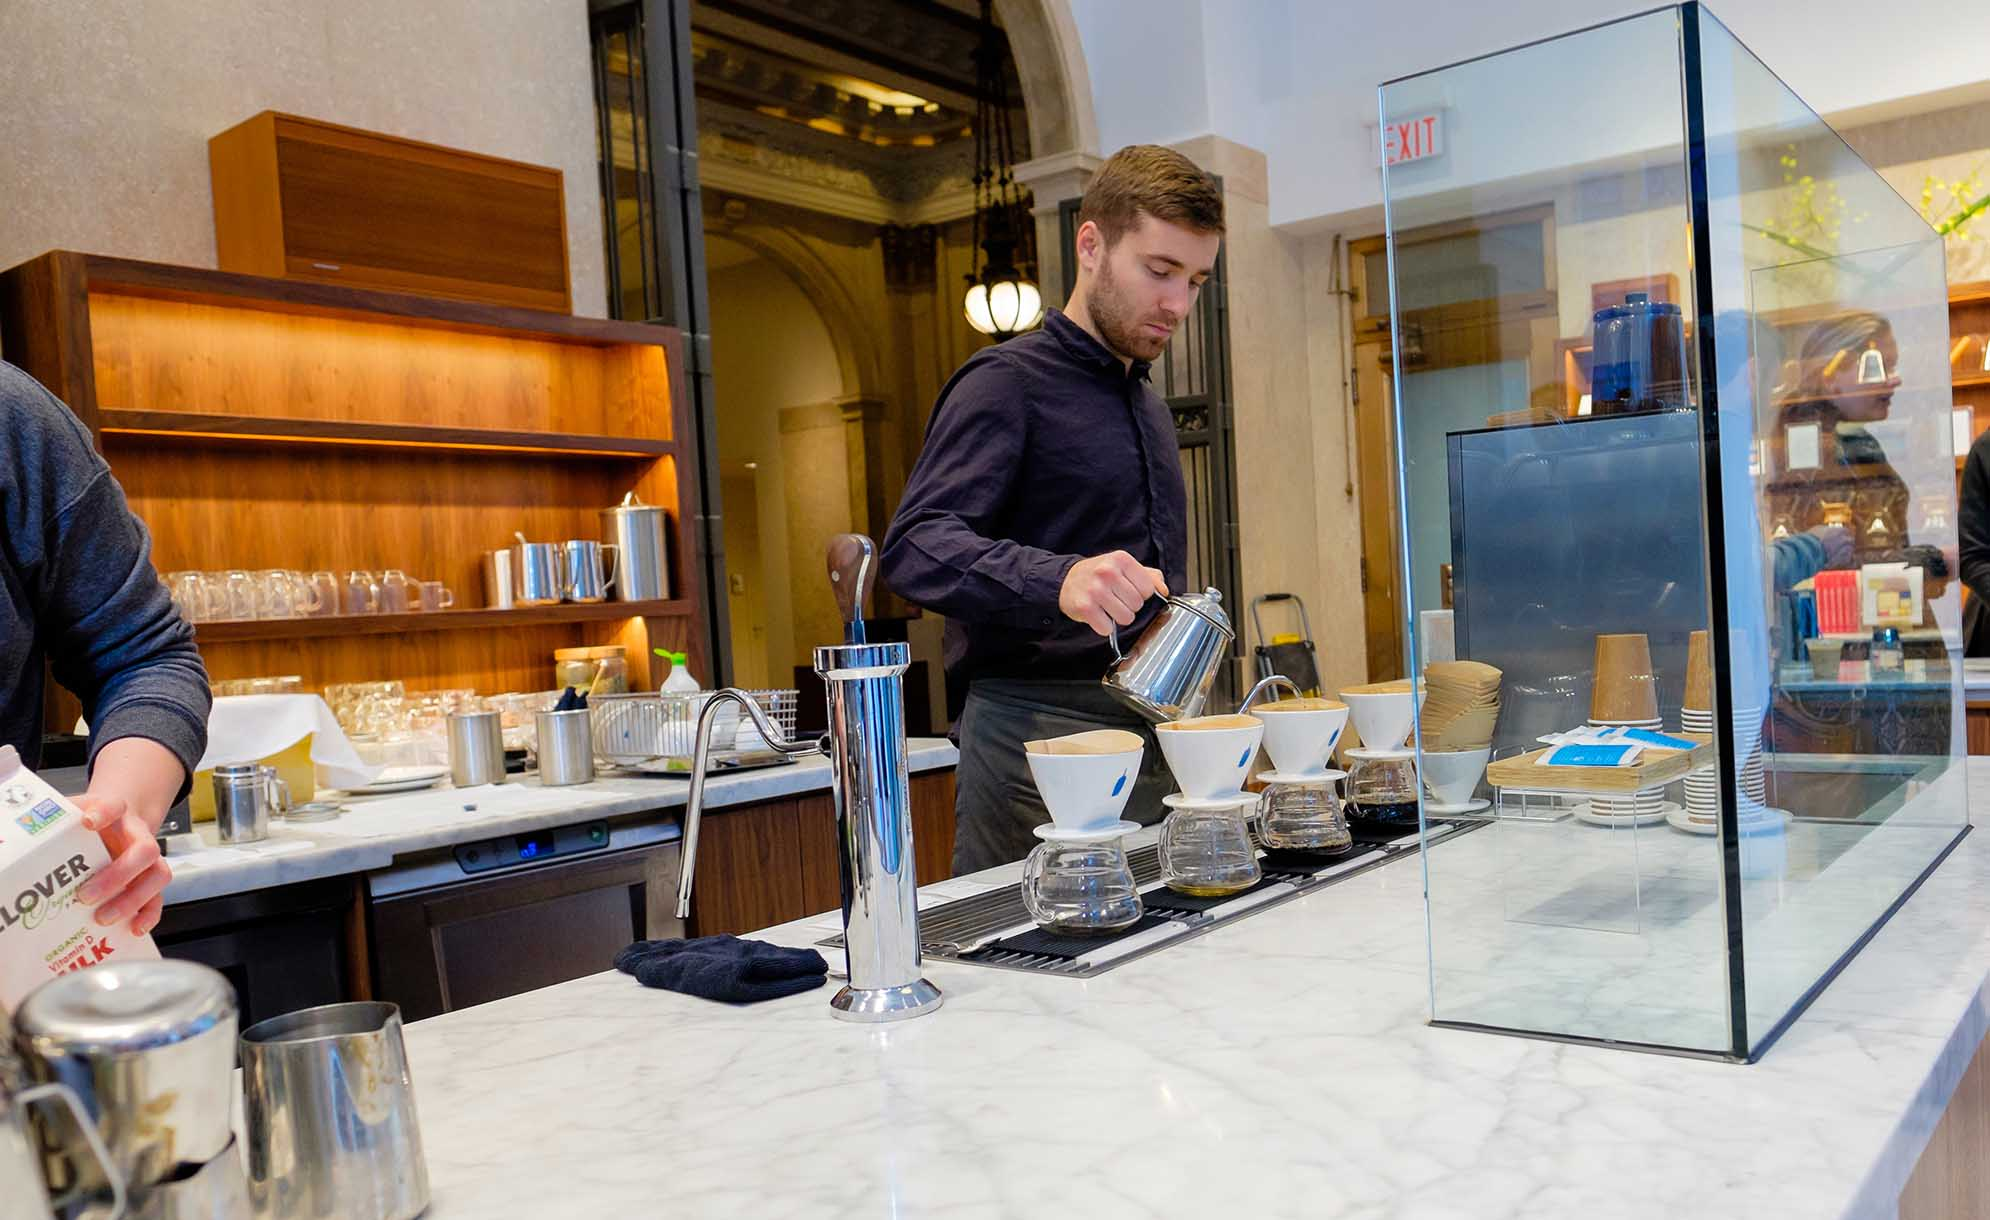 San Francisco city guide - Blue Bottle Coffee